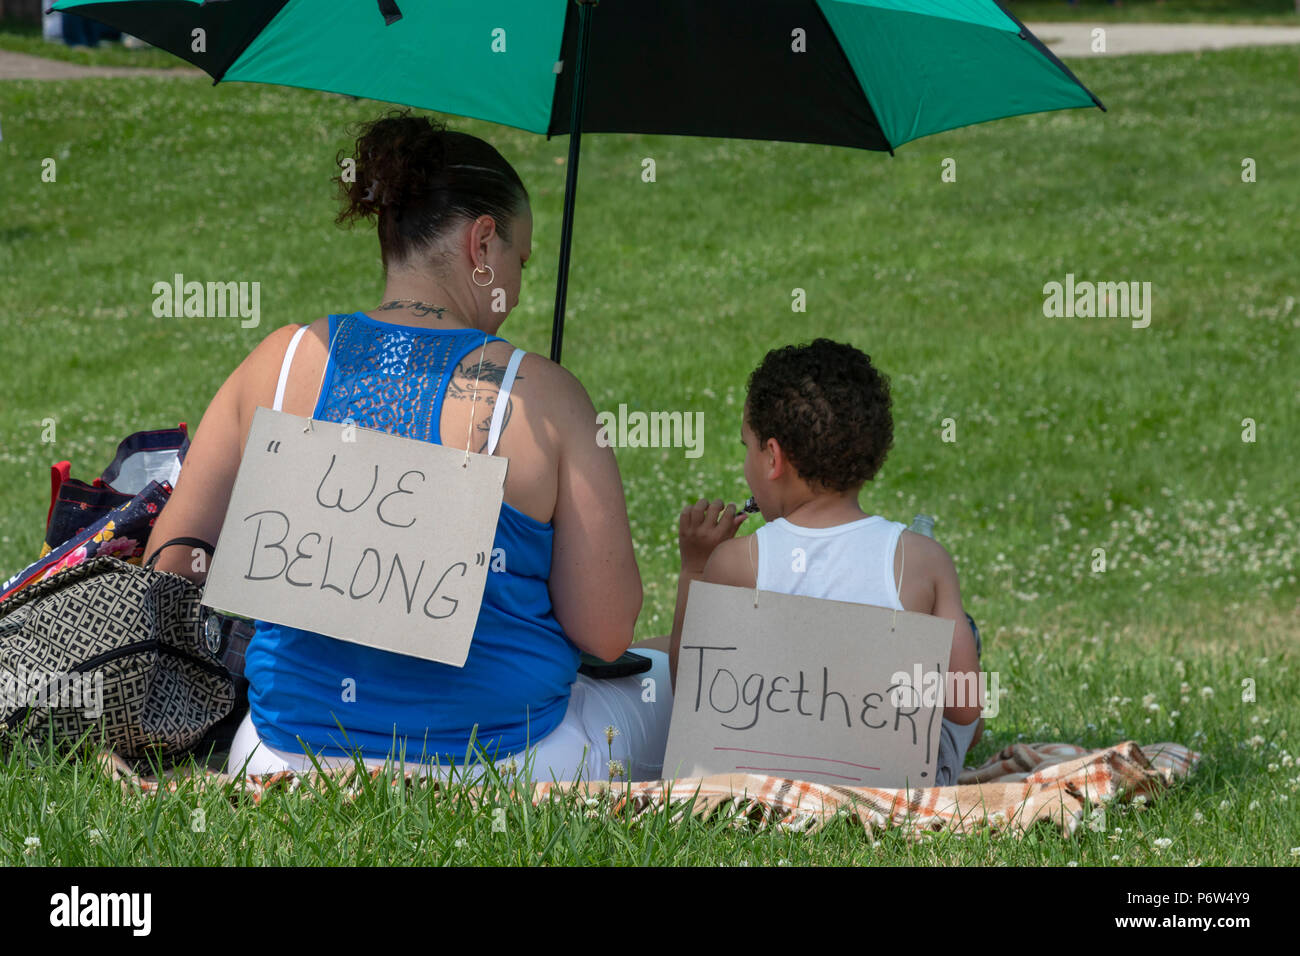 Detroit, Michigan - Protesters oppose the Trump administration's policy of separating young children from their parents at the U.S.-Mexico border. The - Stock Image